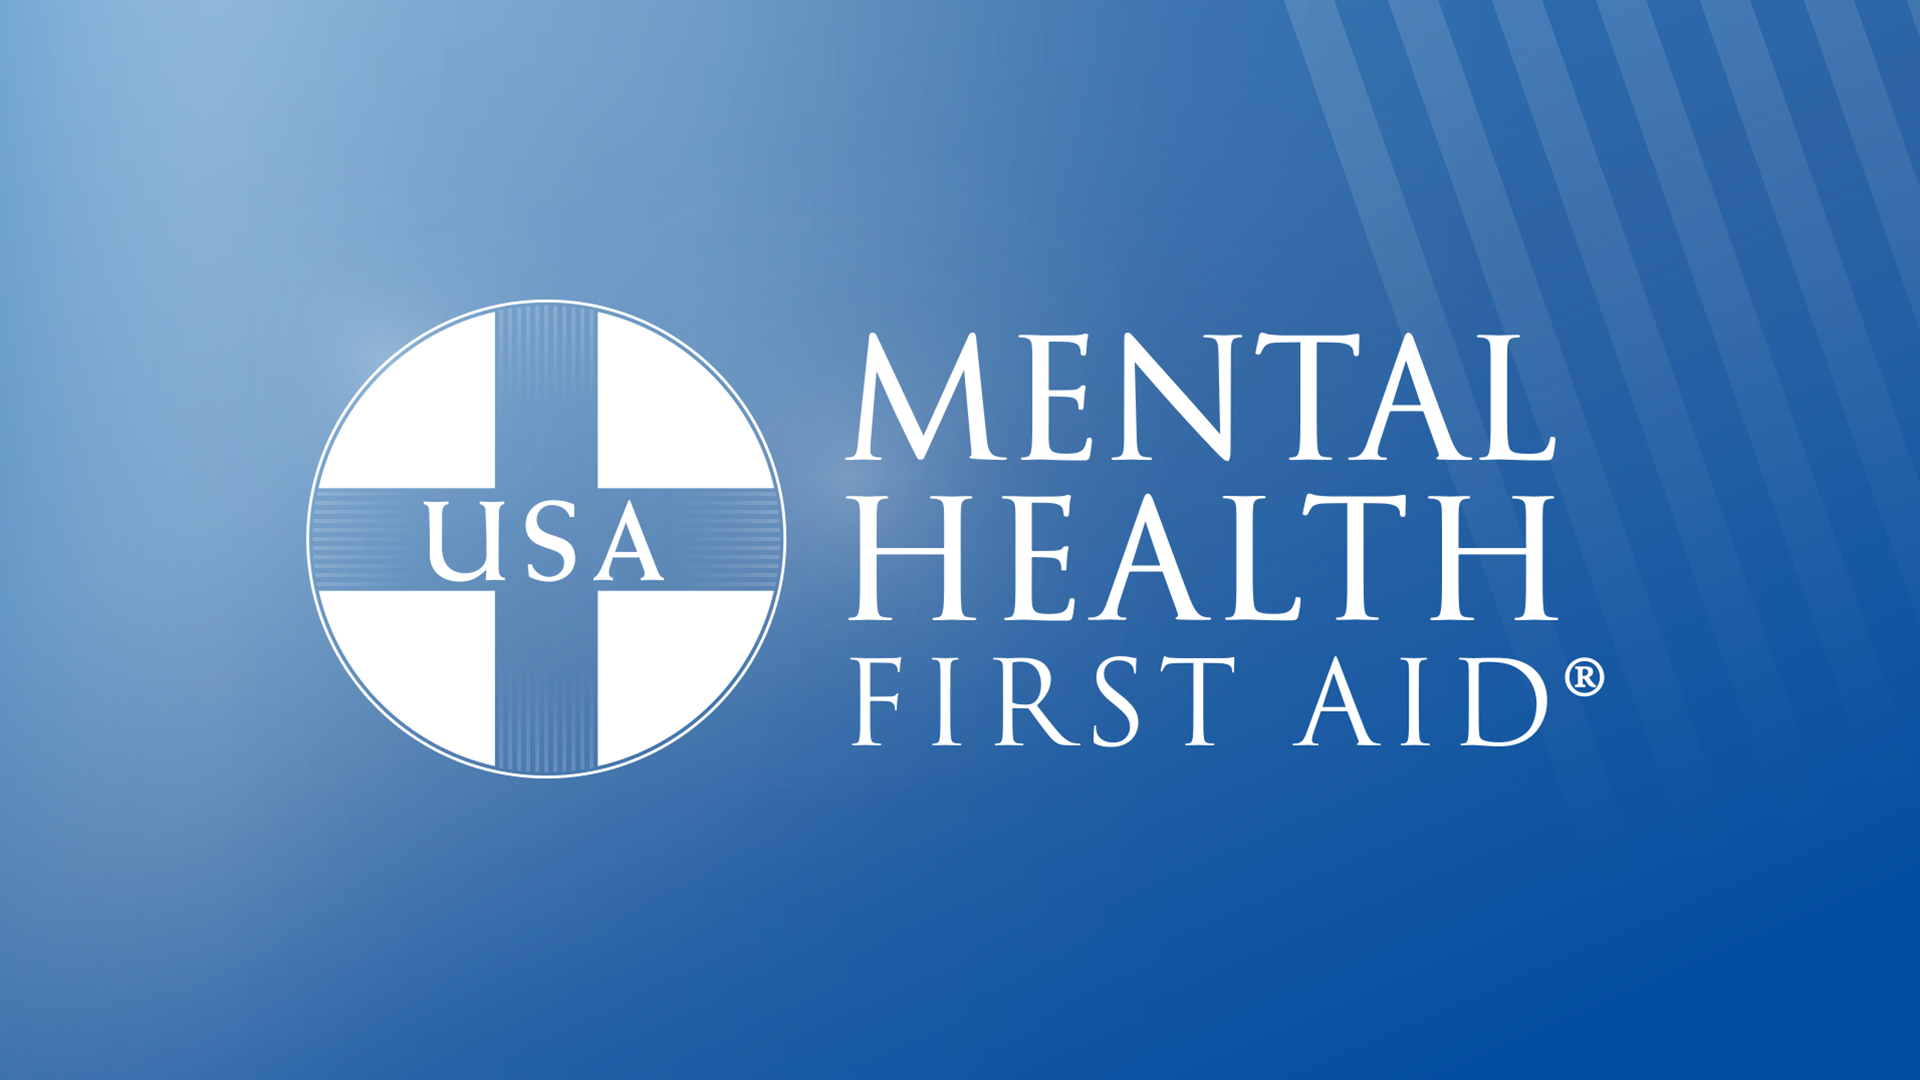 CANCELLED: Mental Health First Aid for Butler University Students, Faculty, and Staff